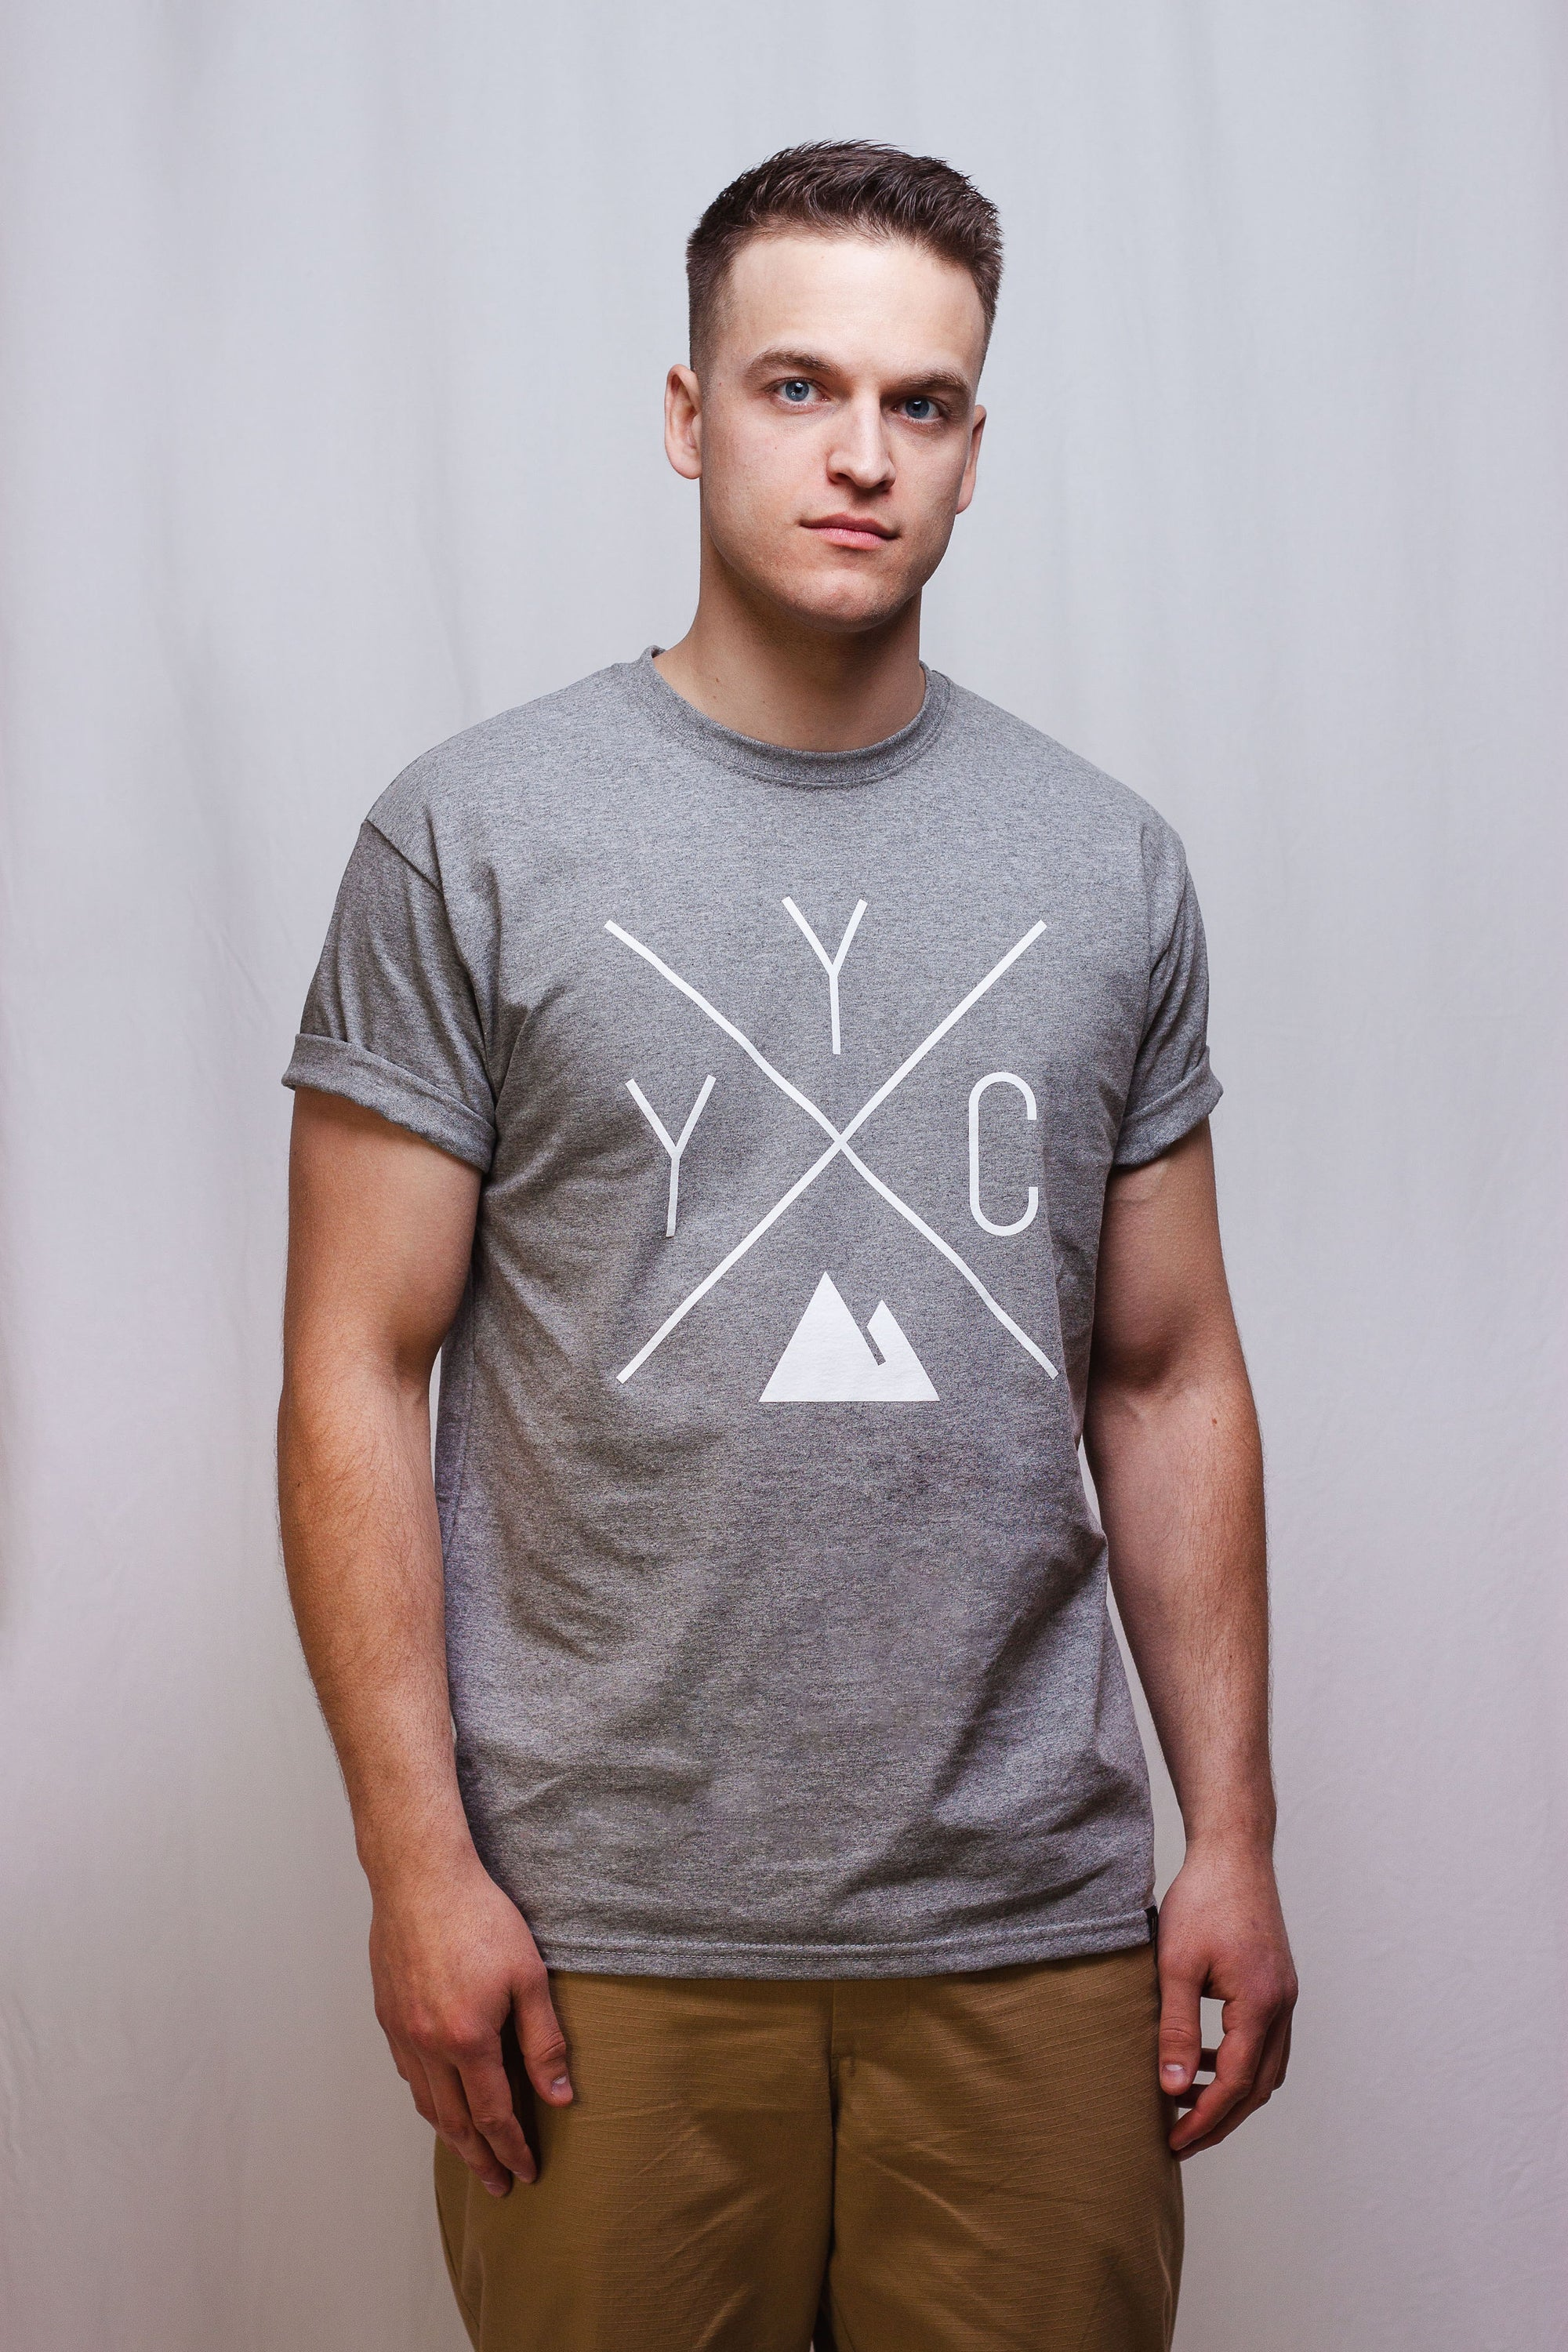 Made in Canada - YYC T-Shirt - X Design - Unisex - Sports Grey - Local Laundry